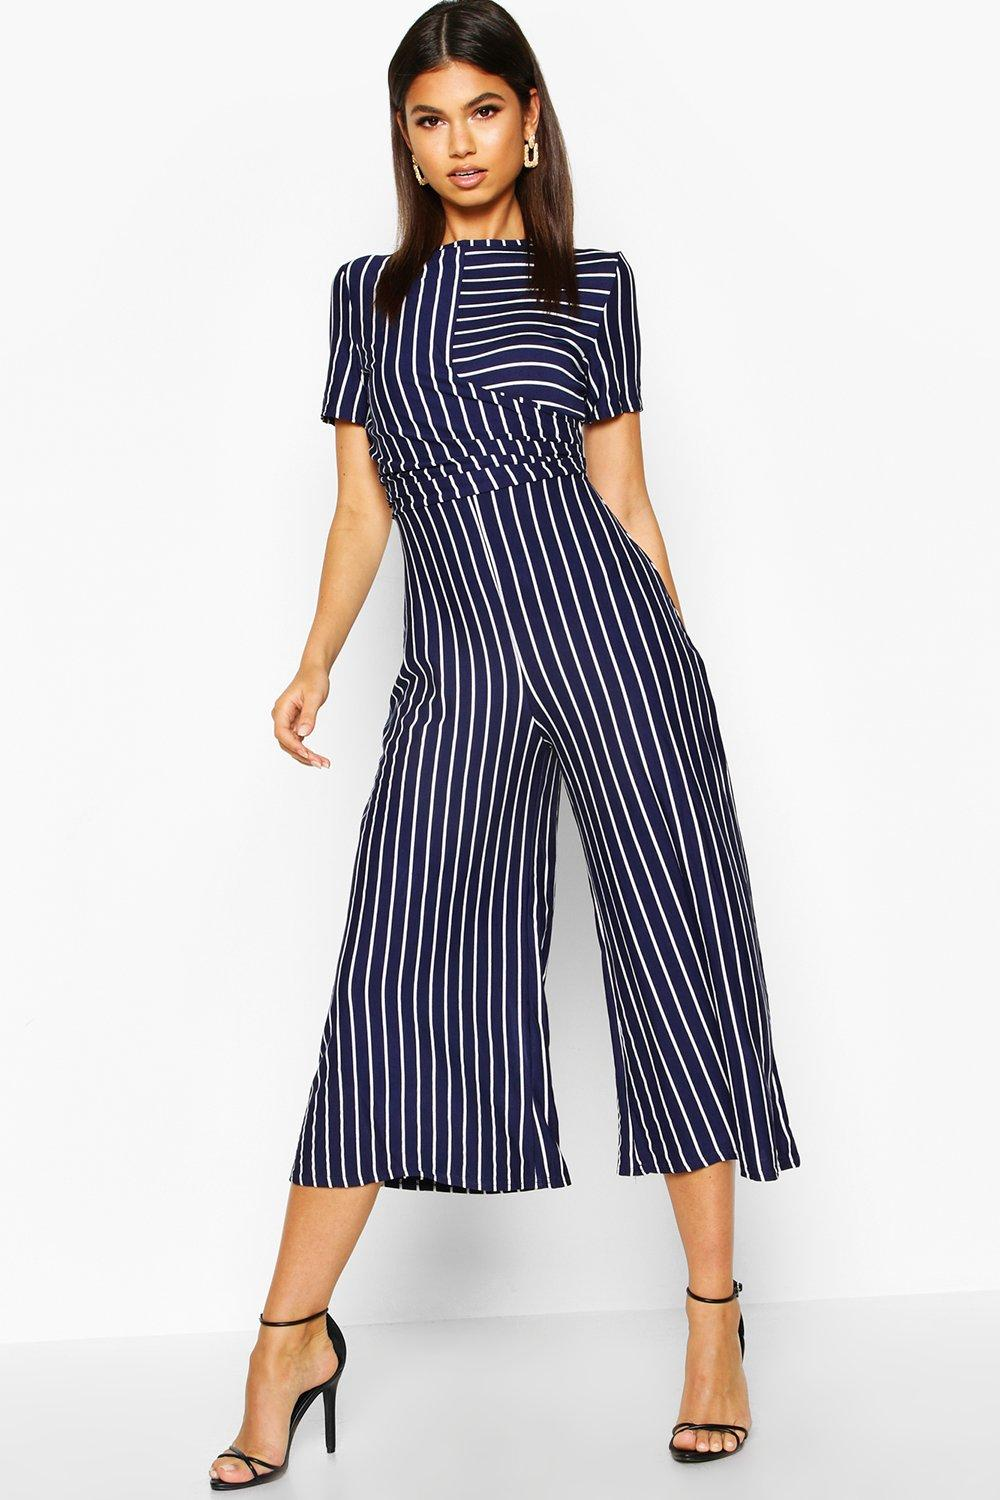 21cc0189fc03 Striped Wrap Culotte Jumpsuit. Hover to zoom